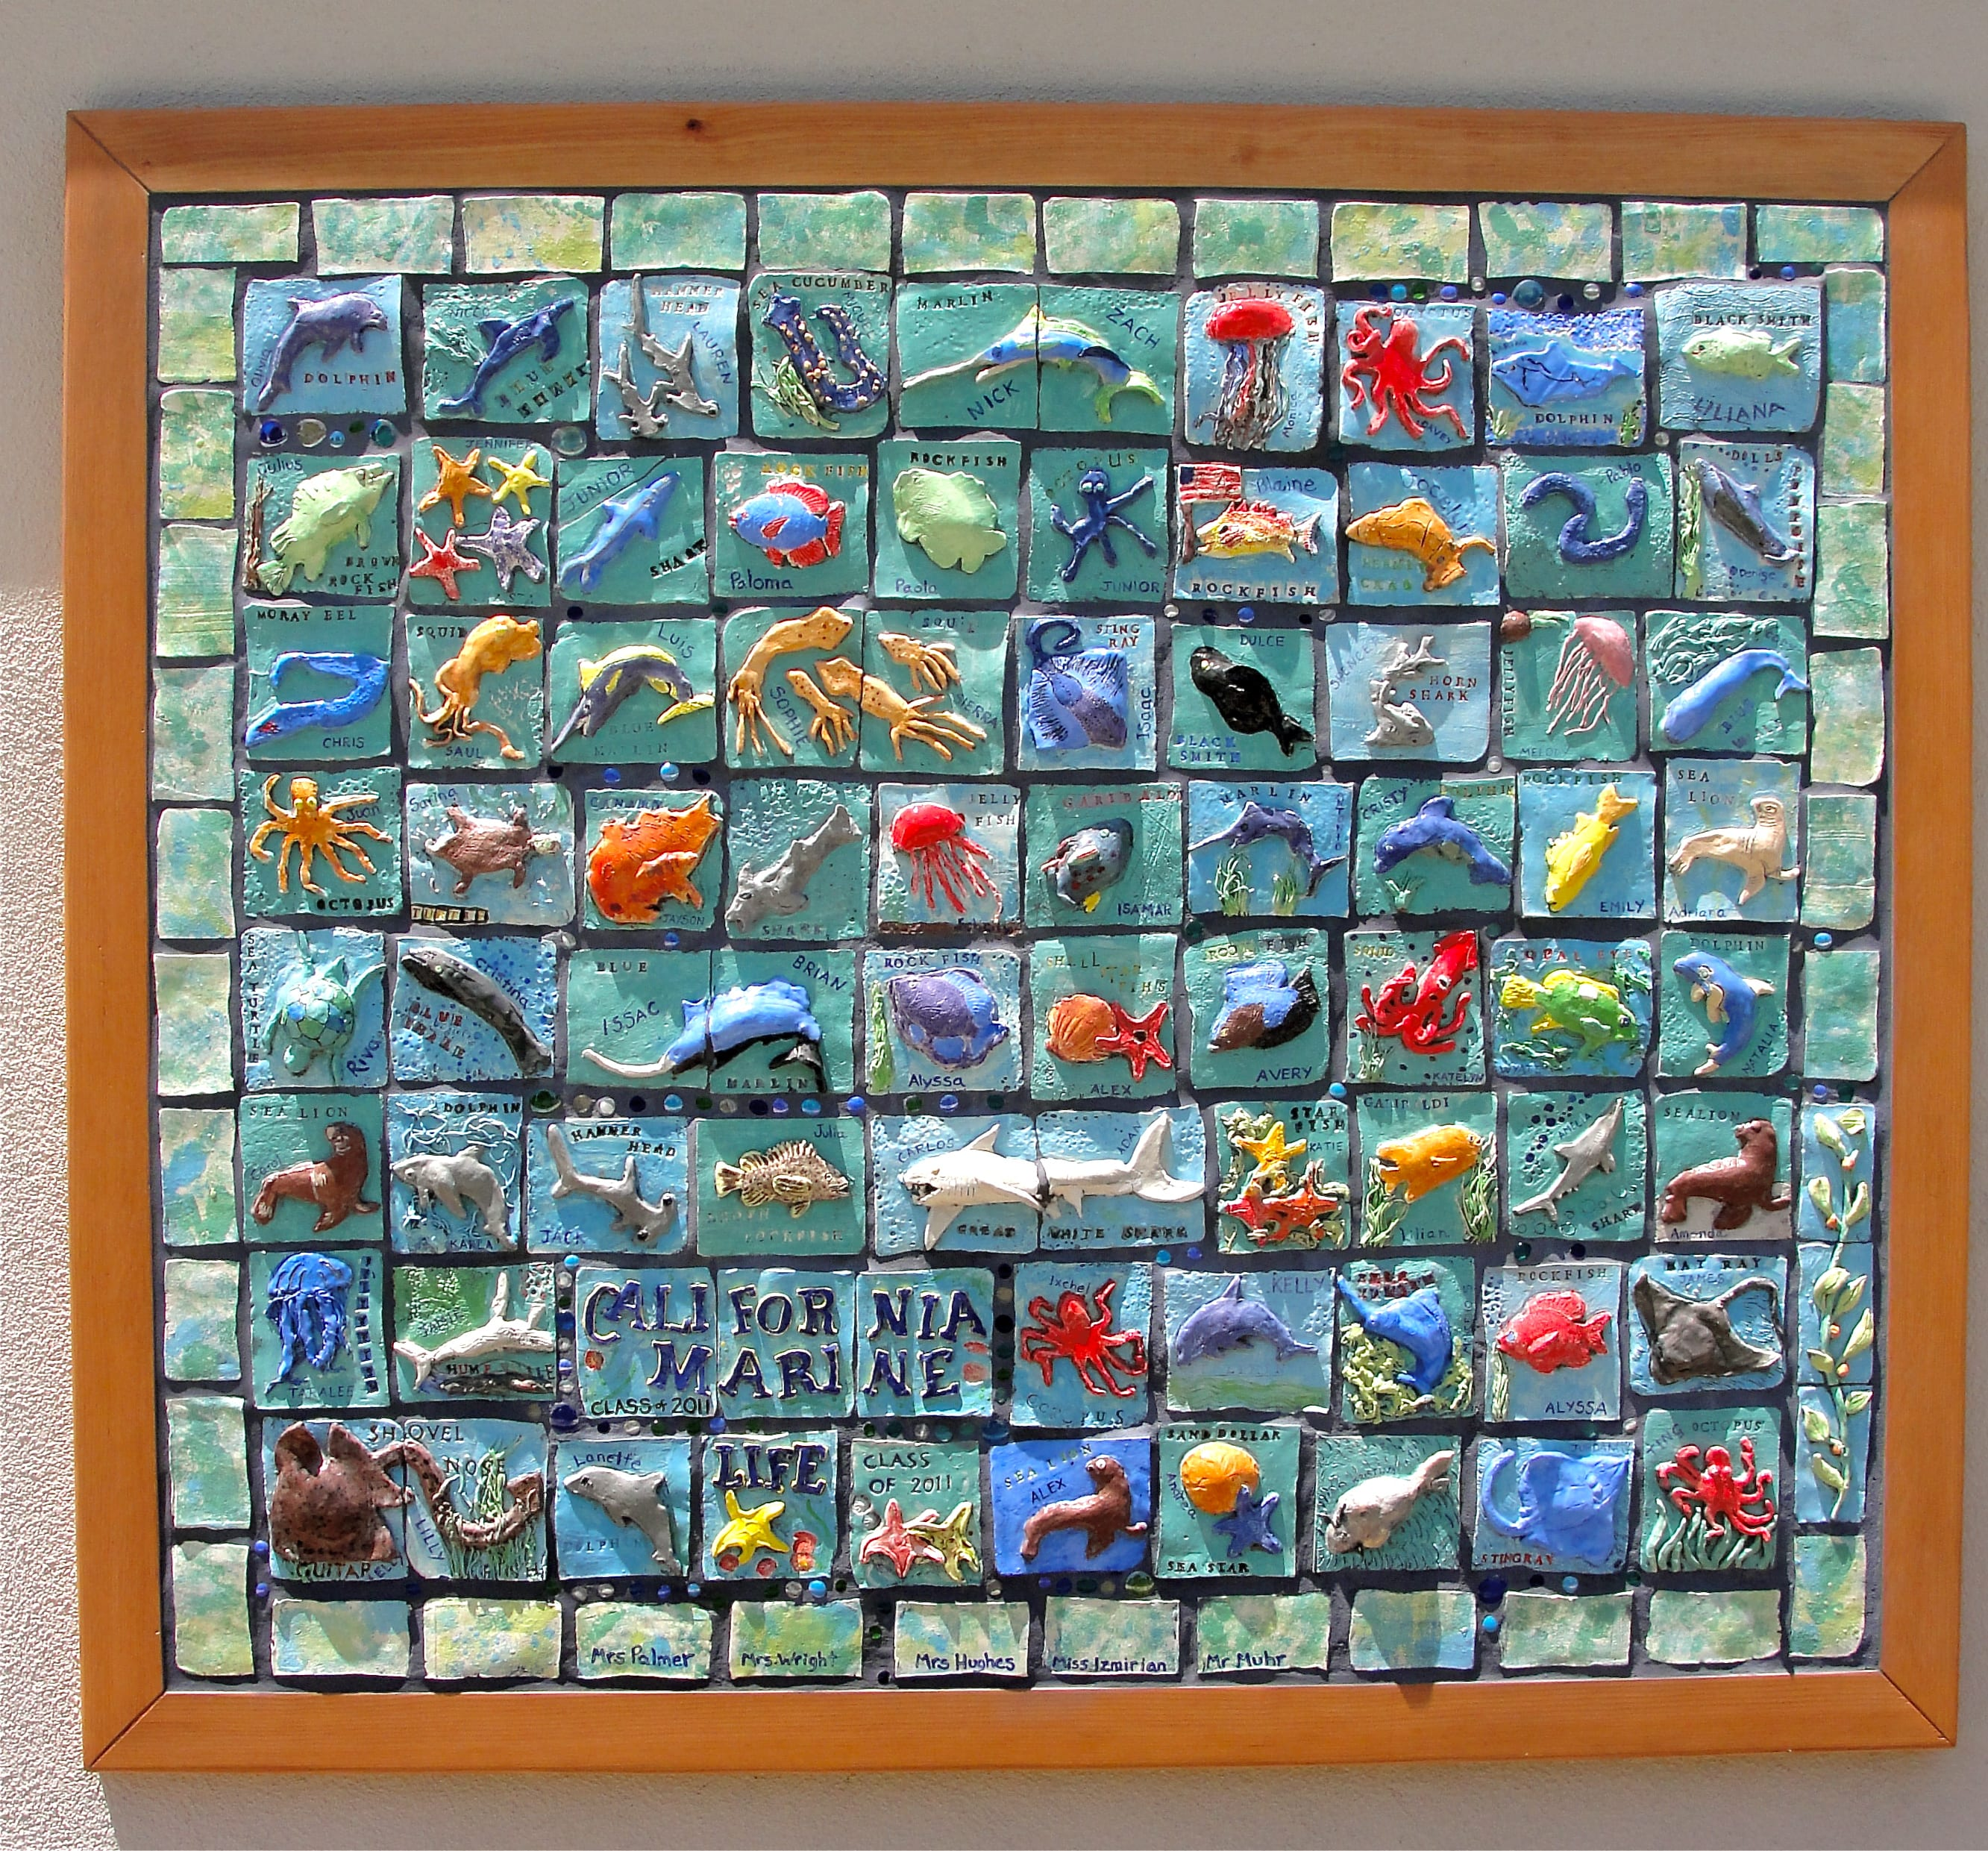 Ceramic tile art image collections tile flooring design ideas california marine life ceramic tile mural collaborative art california marine life ceramic tile mural collaborative art doublecrazyfo Images